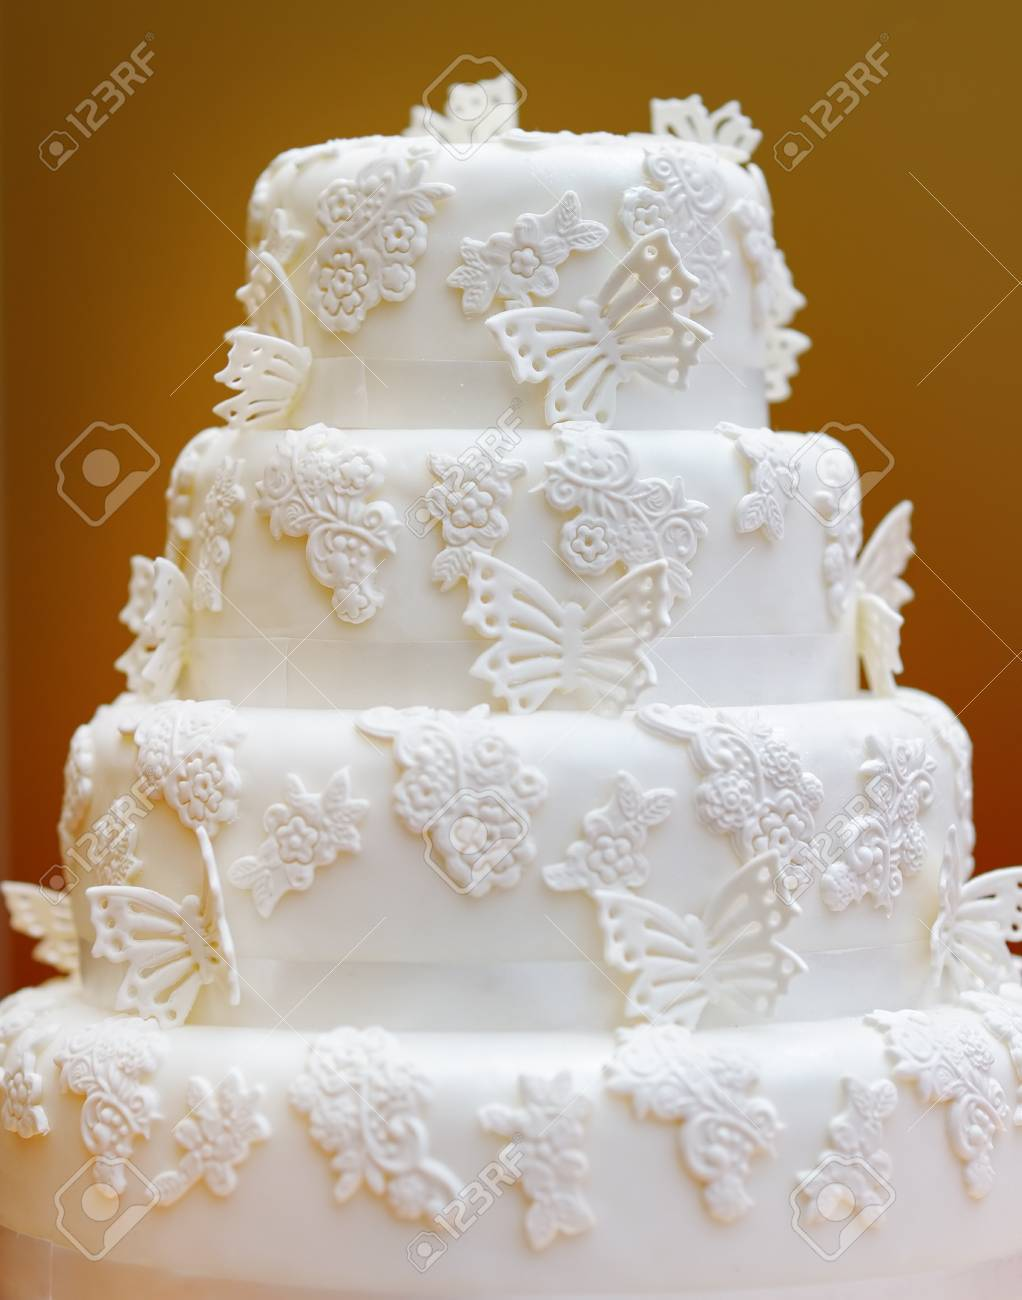 Delicious White Wedding Cake Decorated With Butterfly Stock Photo ...